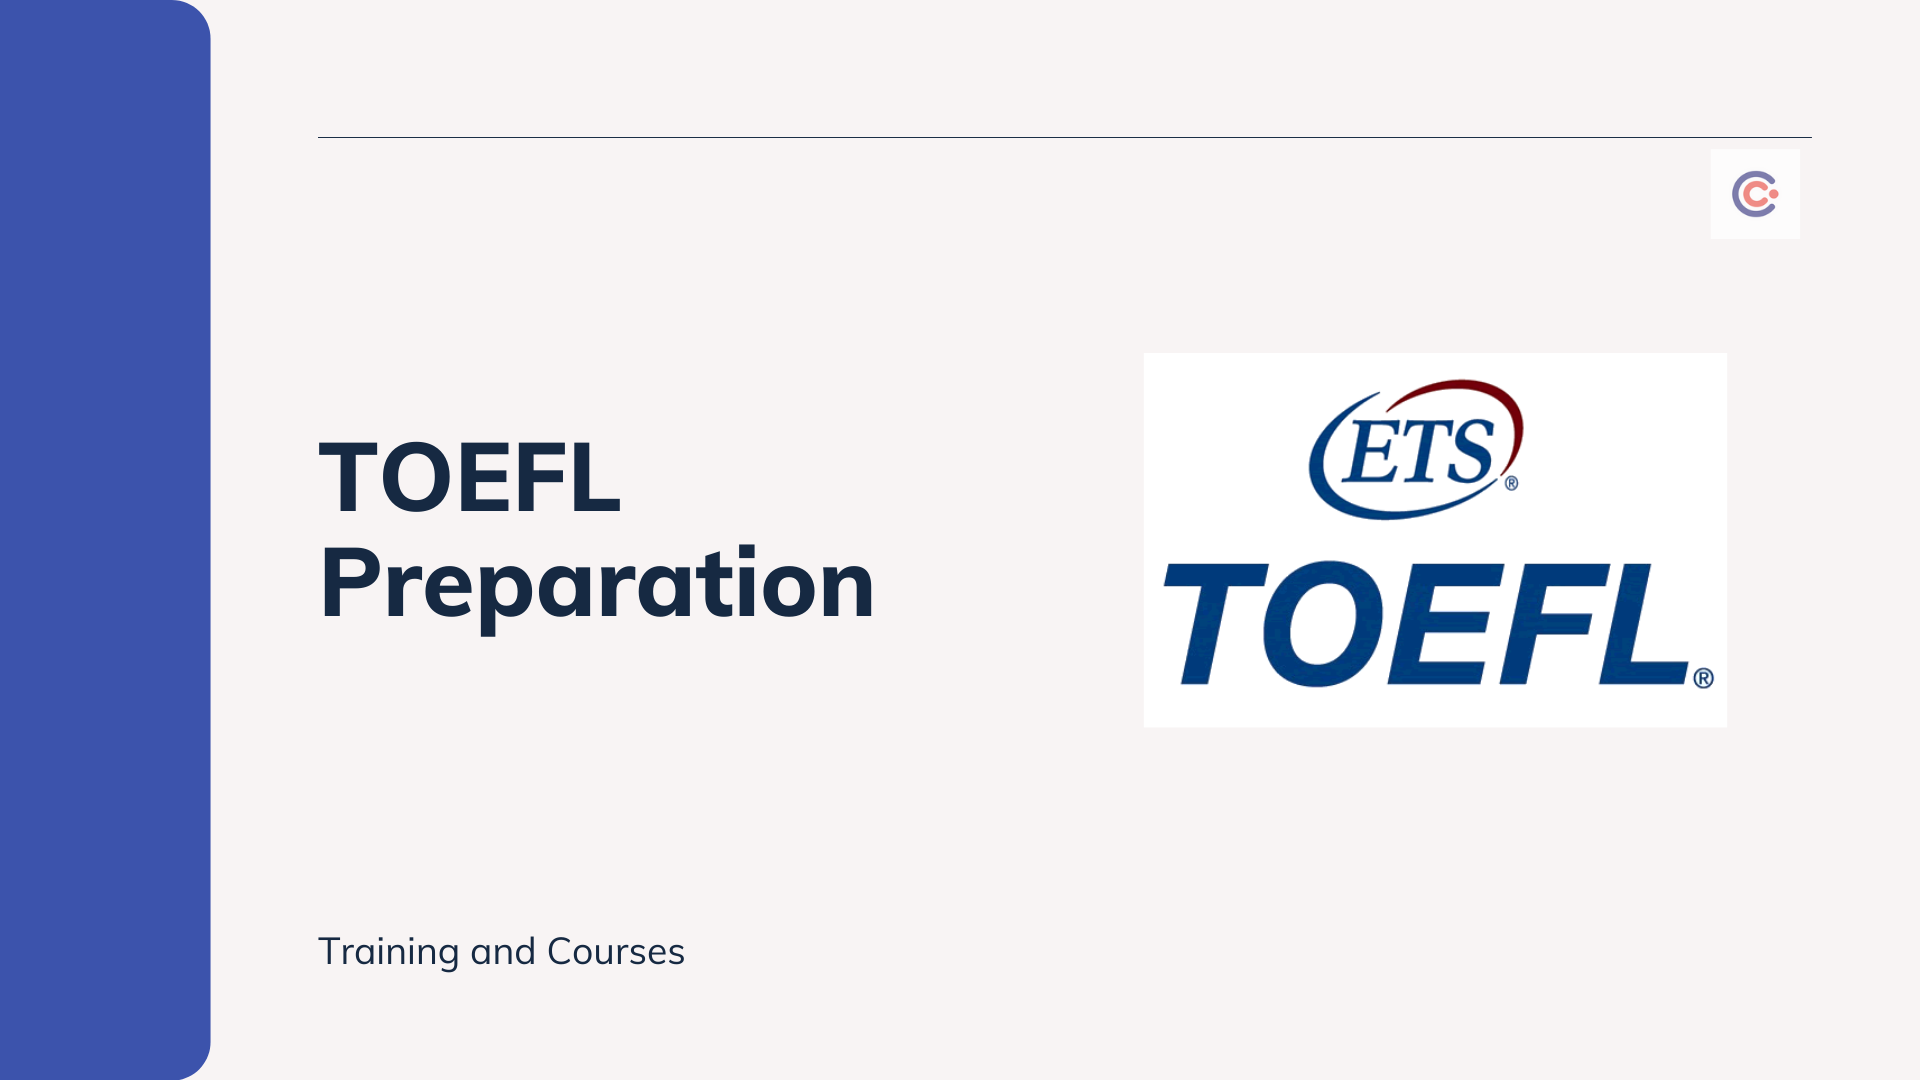 6 Best TOEFL Preparation Training and Courses - Prepare For TOEFL Exam Online